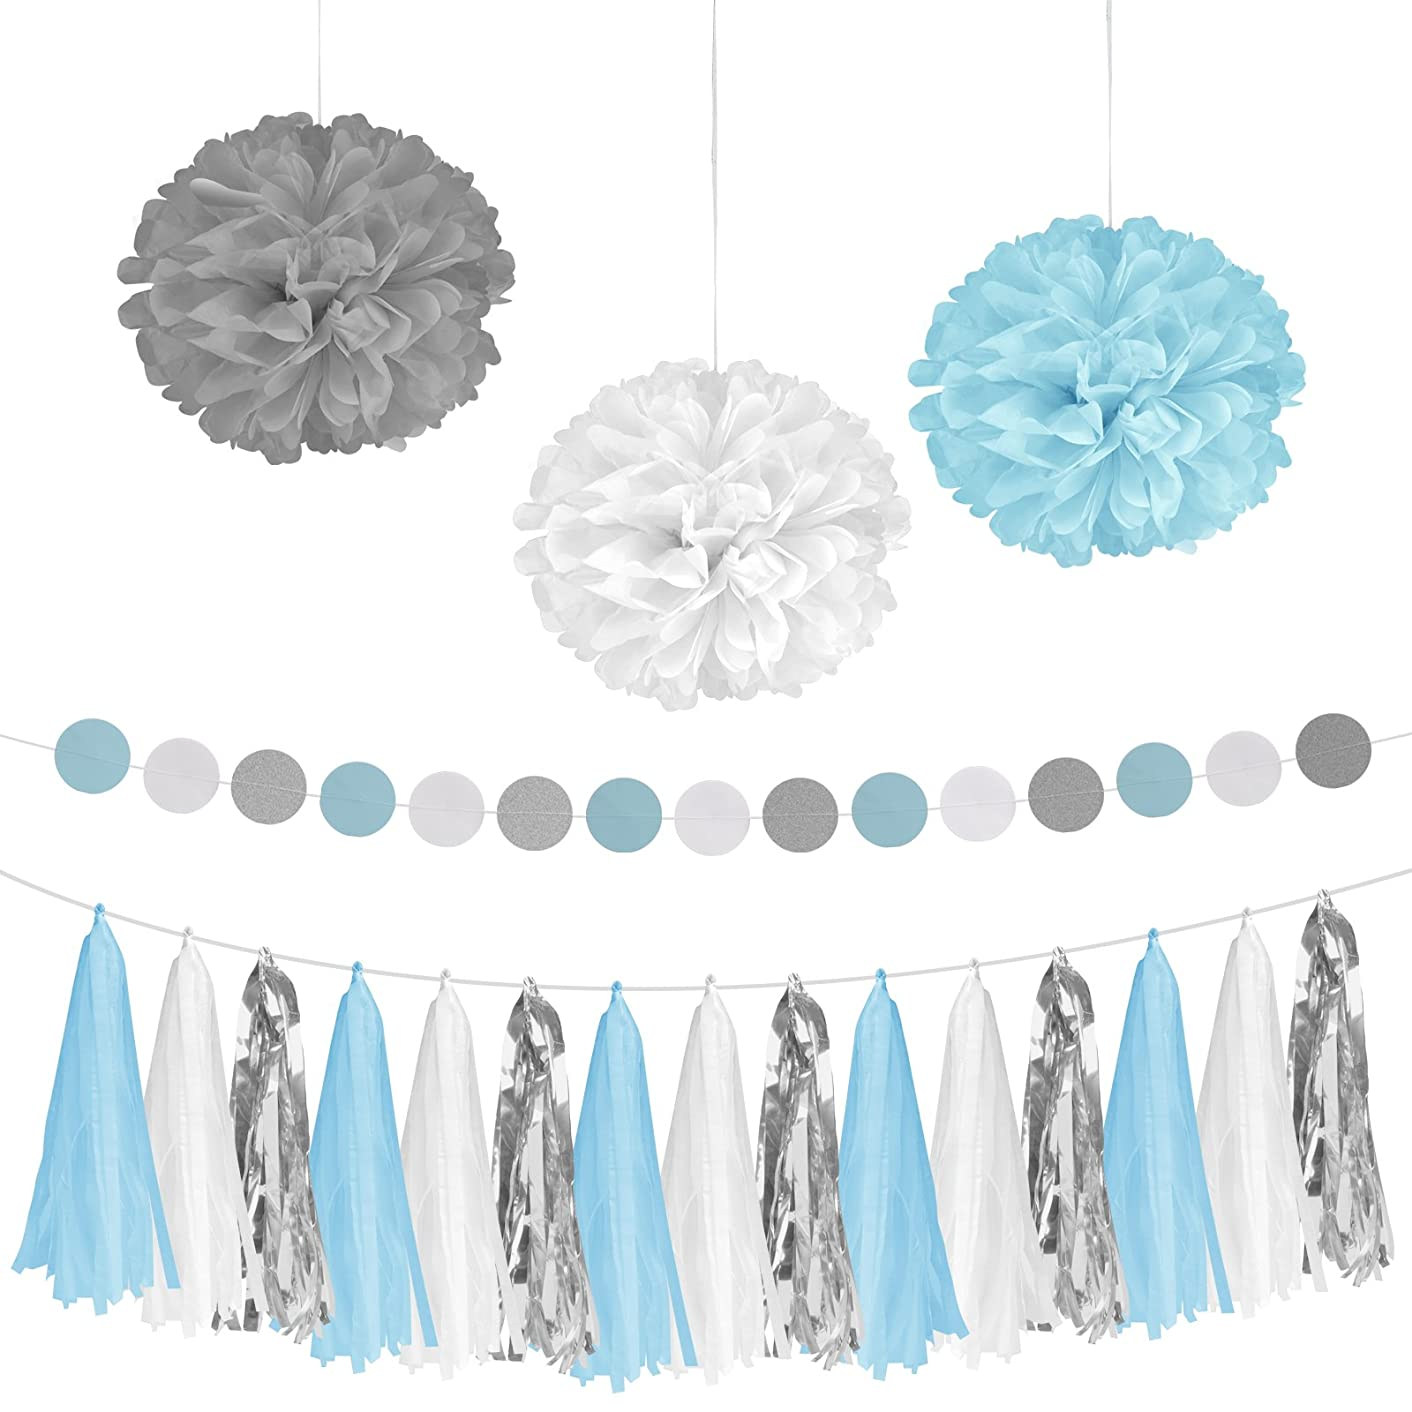 Birthday Party Decorations Set, Pom Poms Flower, Paper Tissue Tassel Garland for Baby Shower Bridal Shower Engagement Wedding Party